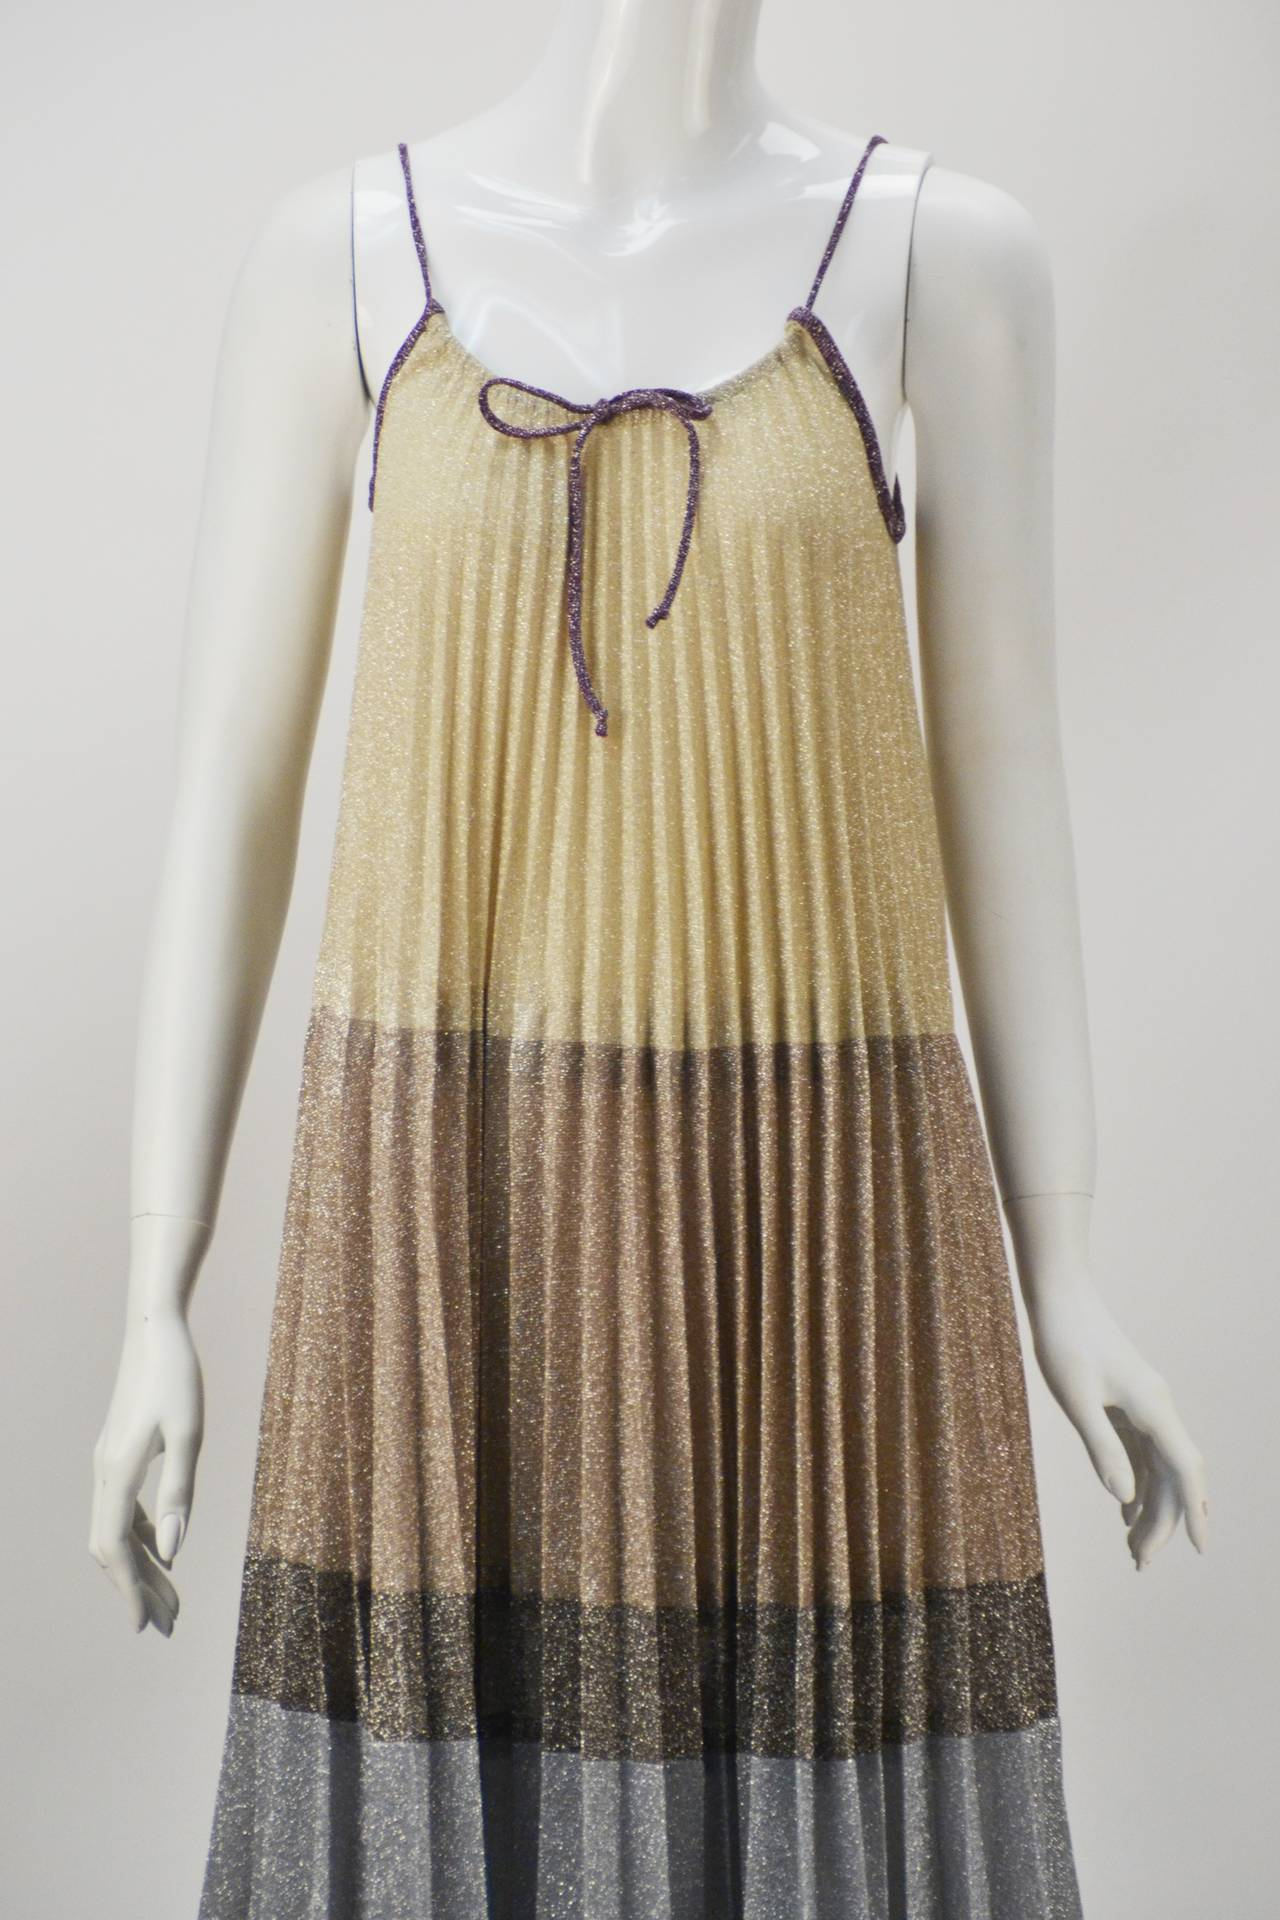 1970s Giorgio Sant' Angelo Knit Metallic Mini dress 5